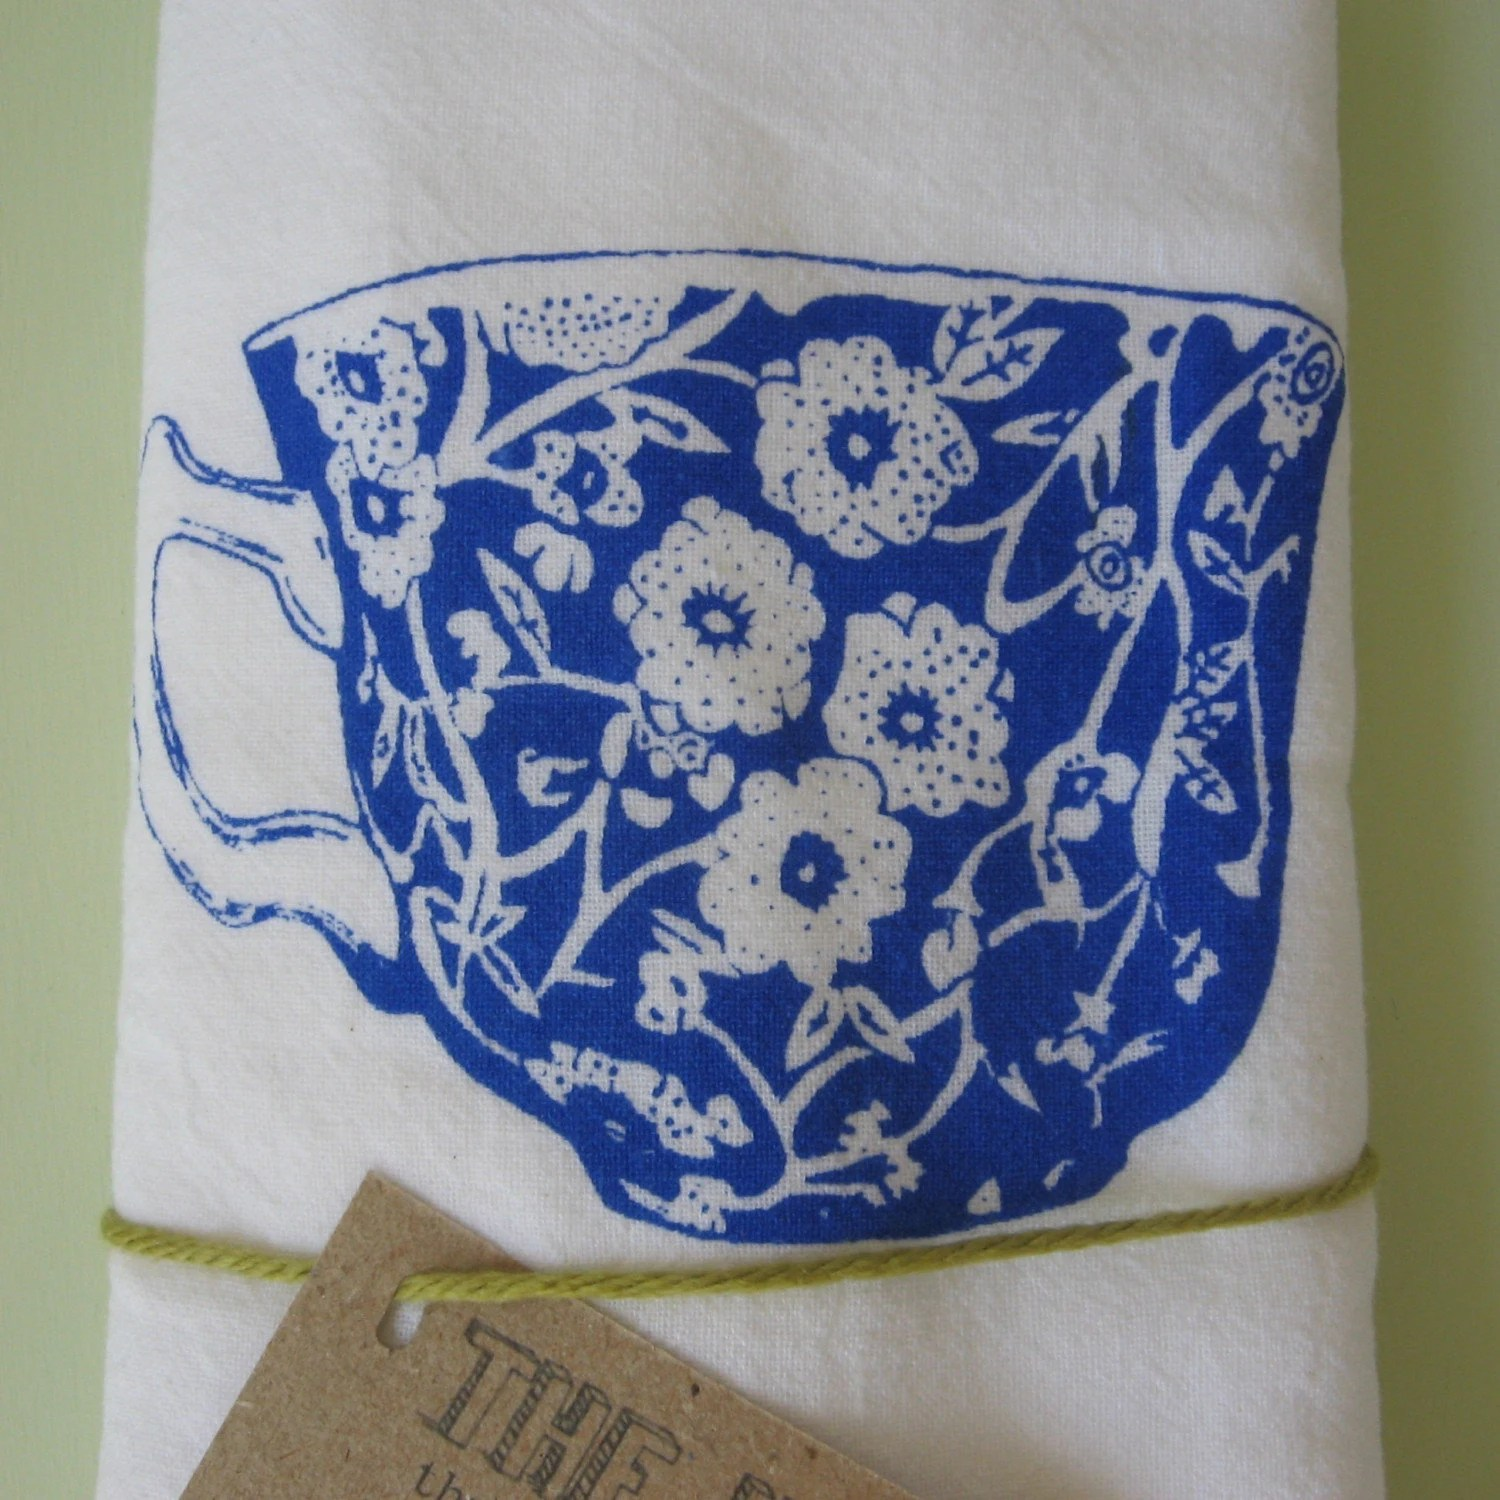 The Heated Teacup - Electric Blue on White Dishtowel